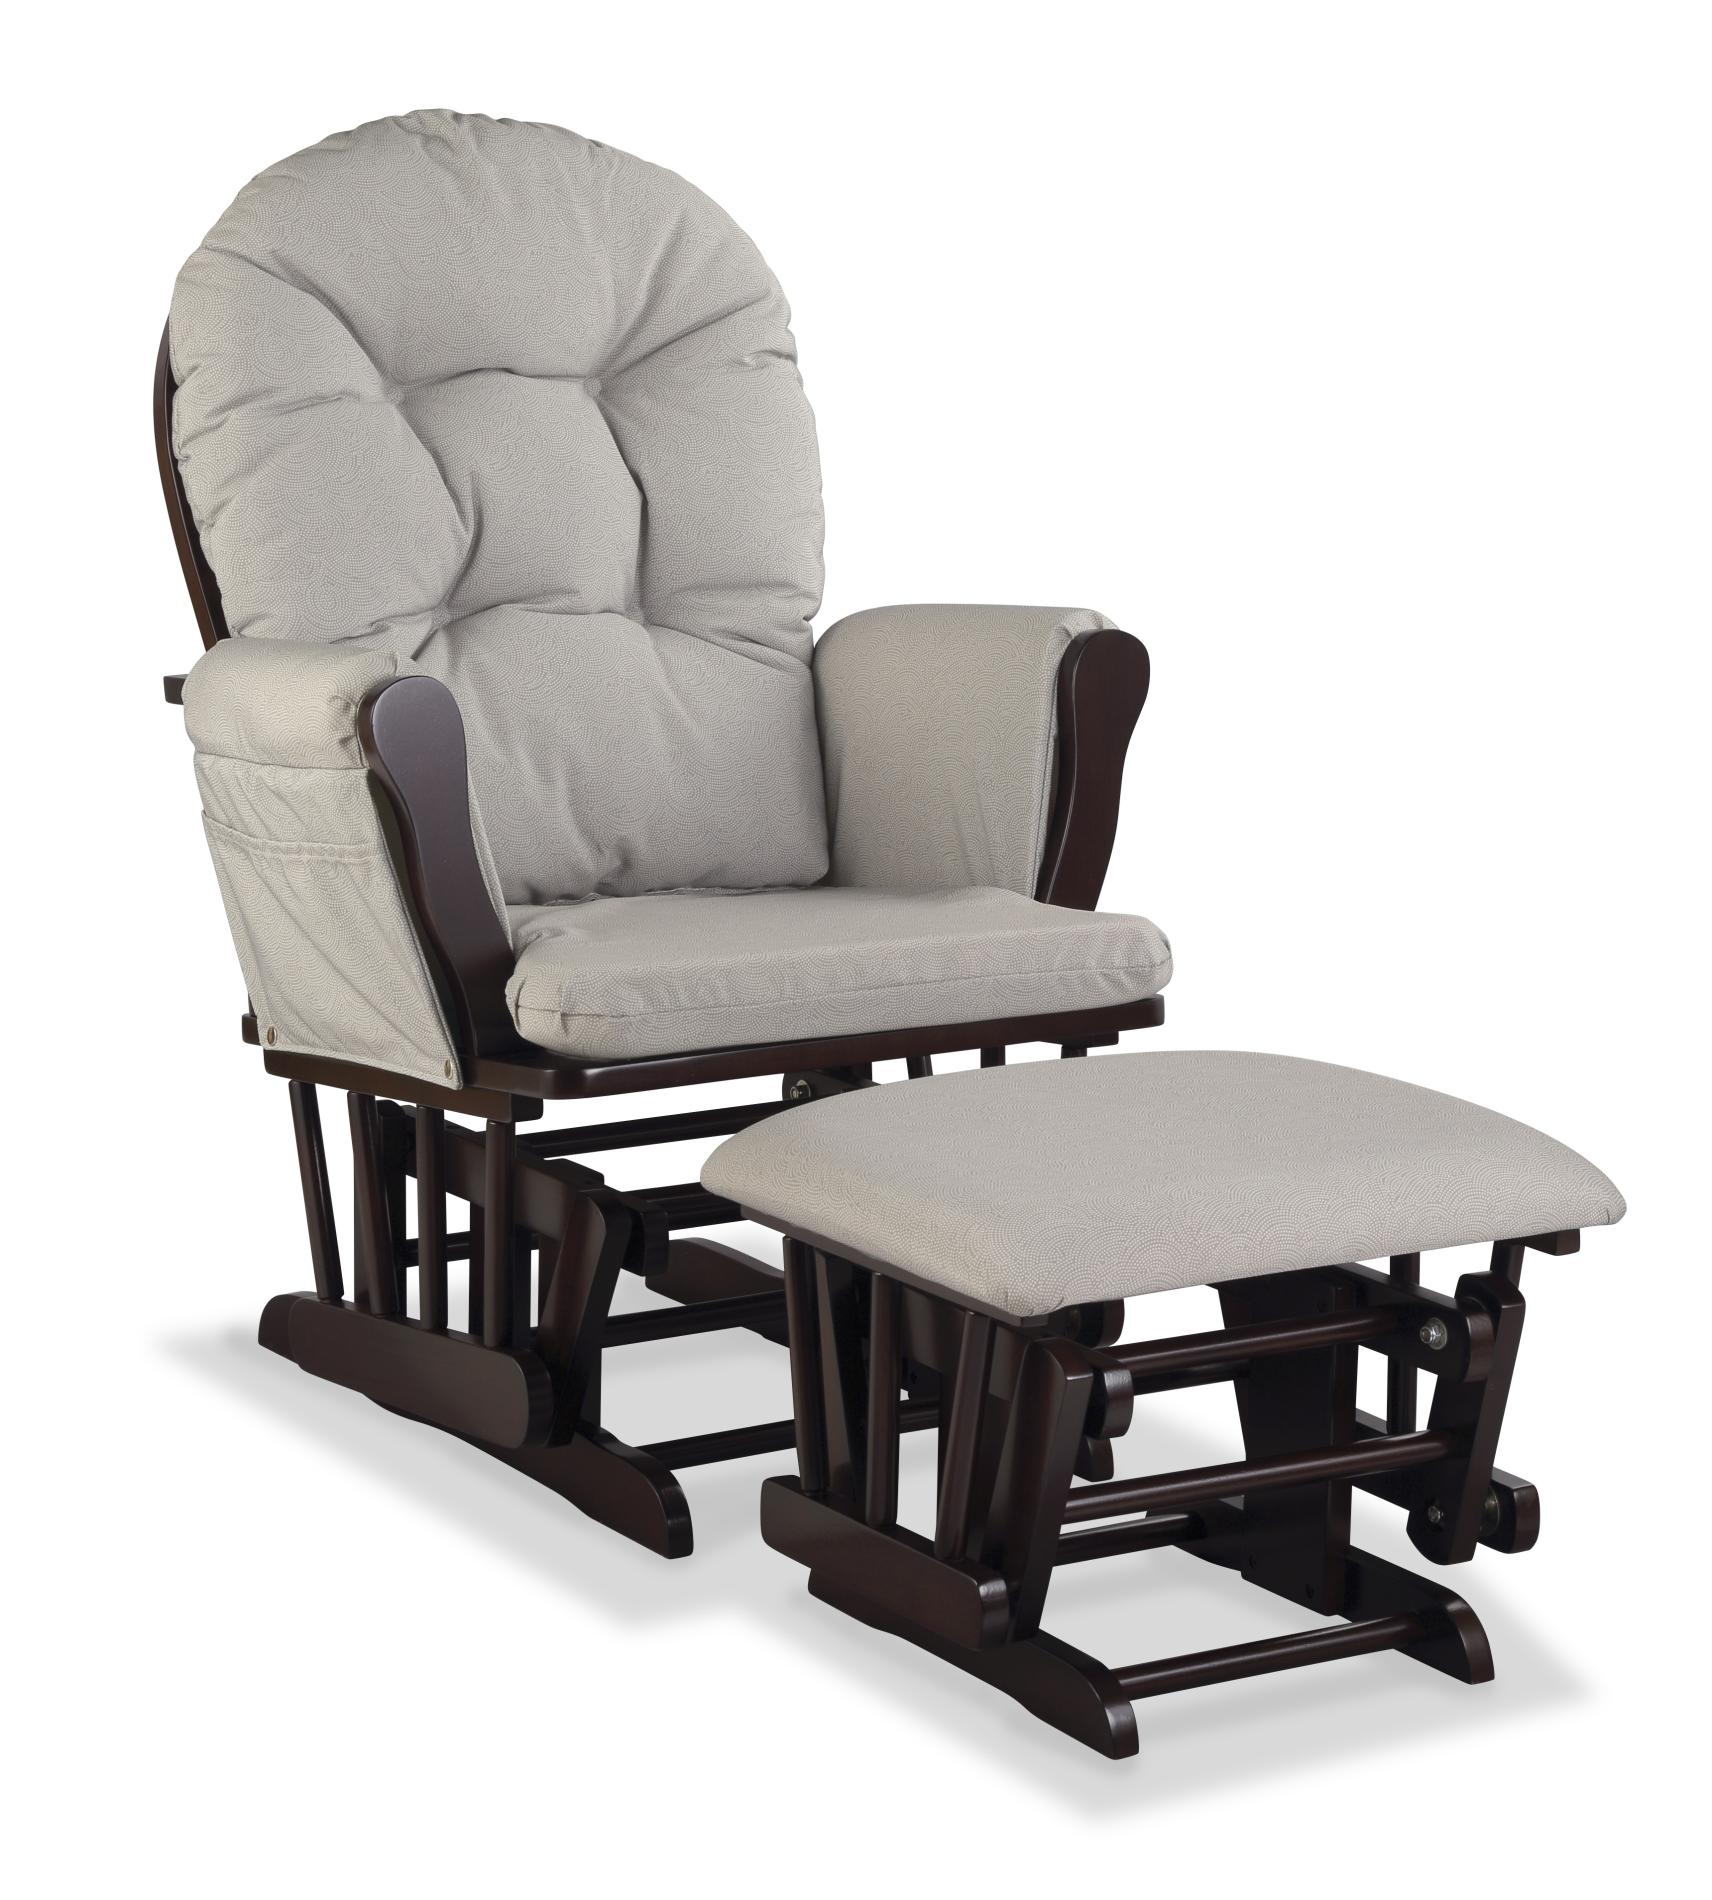 graco nursery glider chair u0026 ottoman - baby - baby furniture - gliders VARQPIV